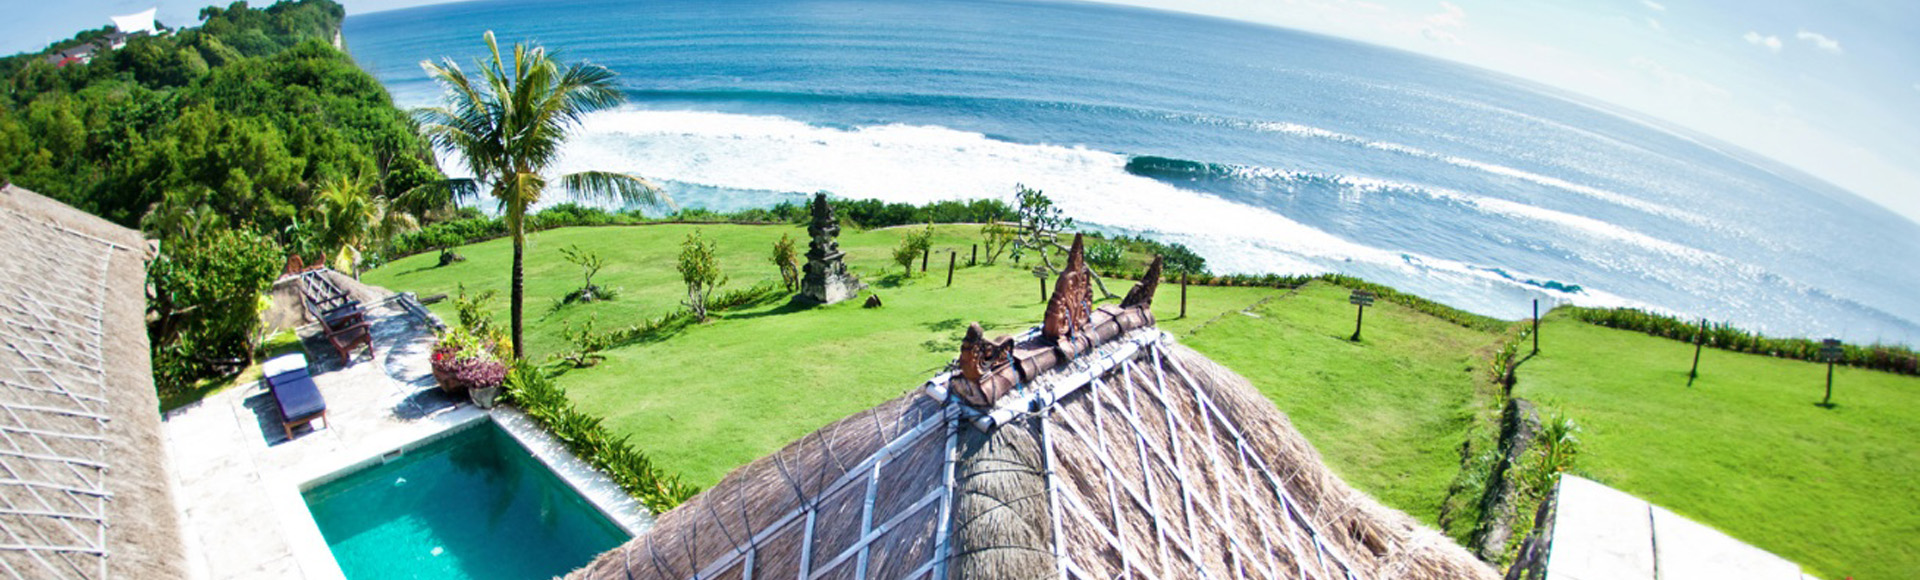 Uluwatu Surf Villas View